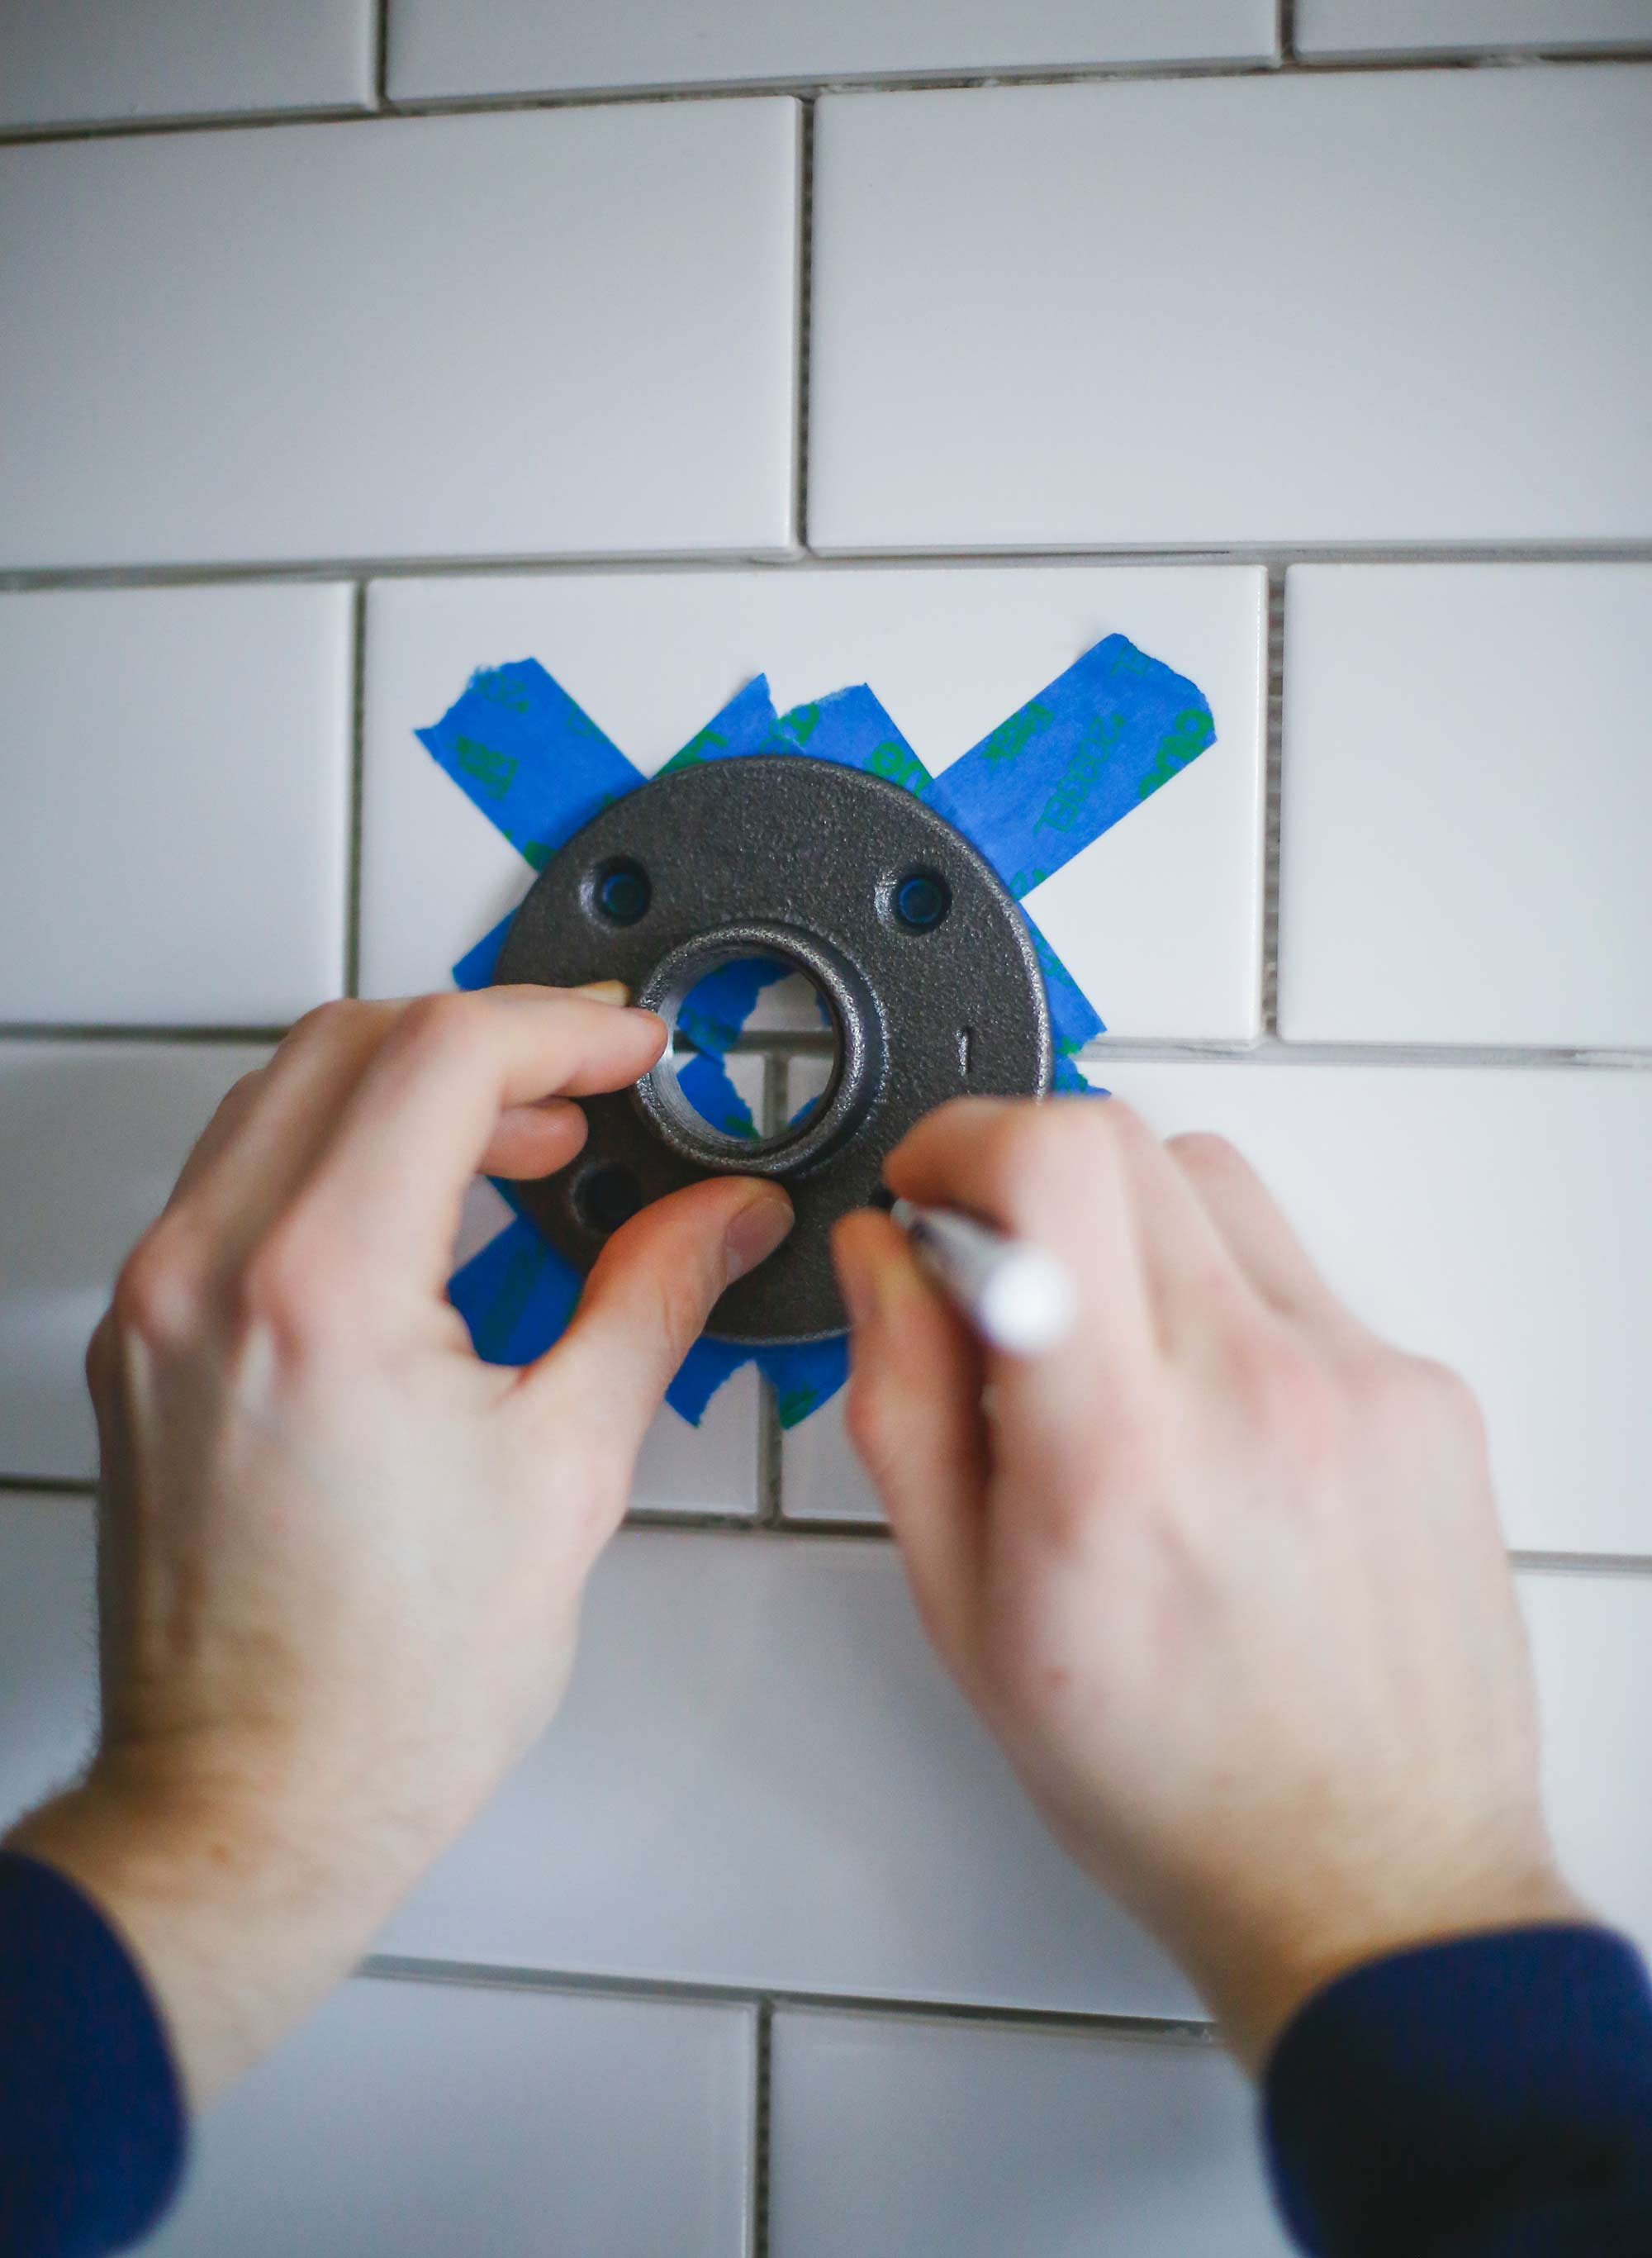 Installing Shelf Flanges by Marking Tile